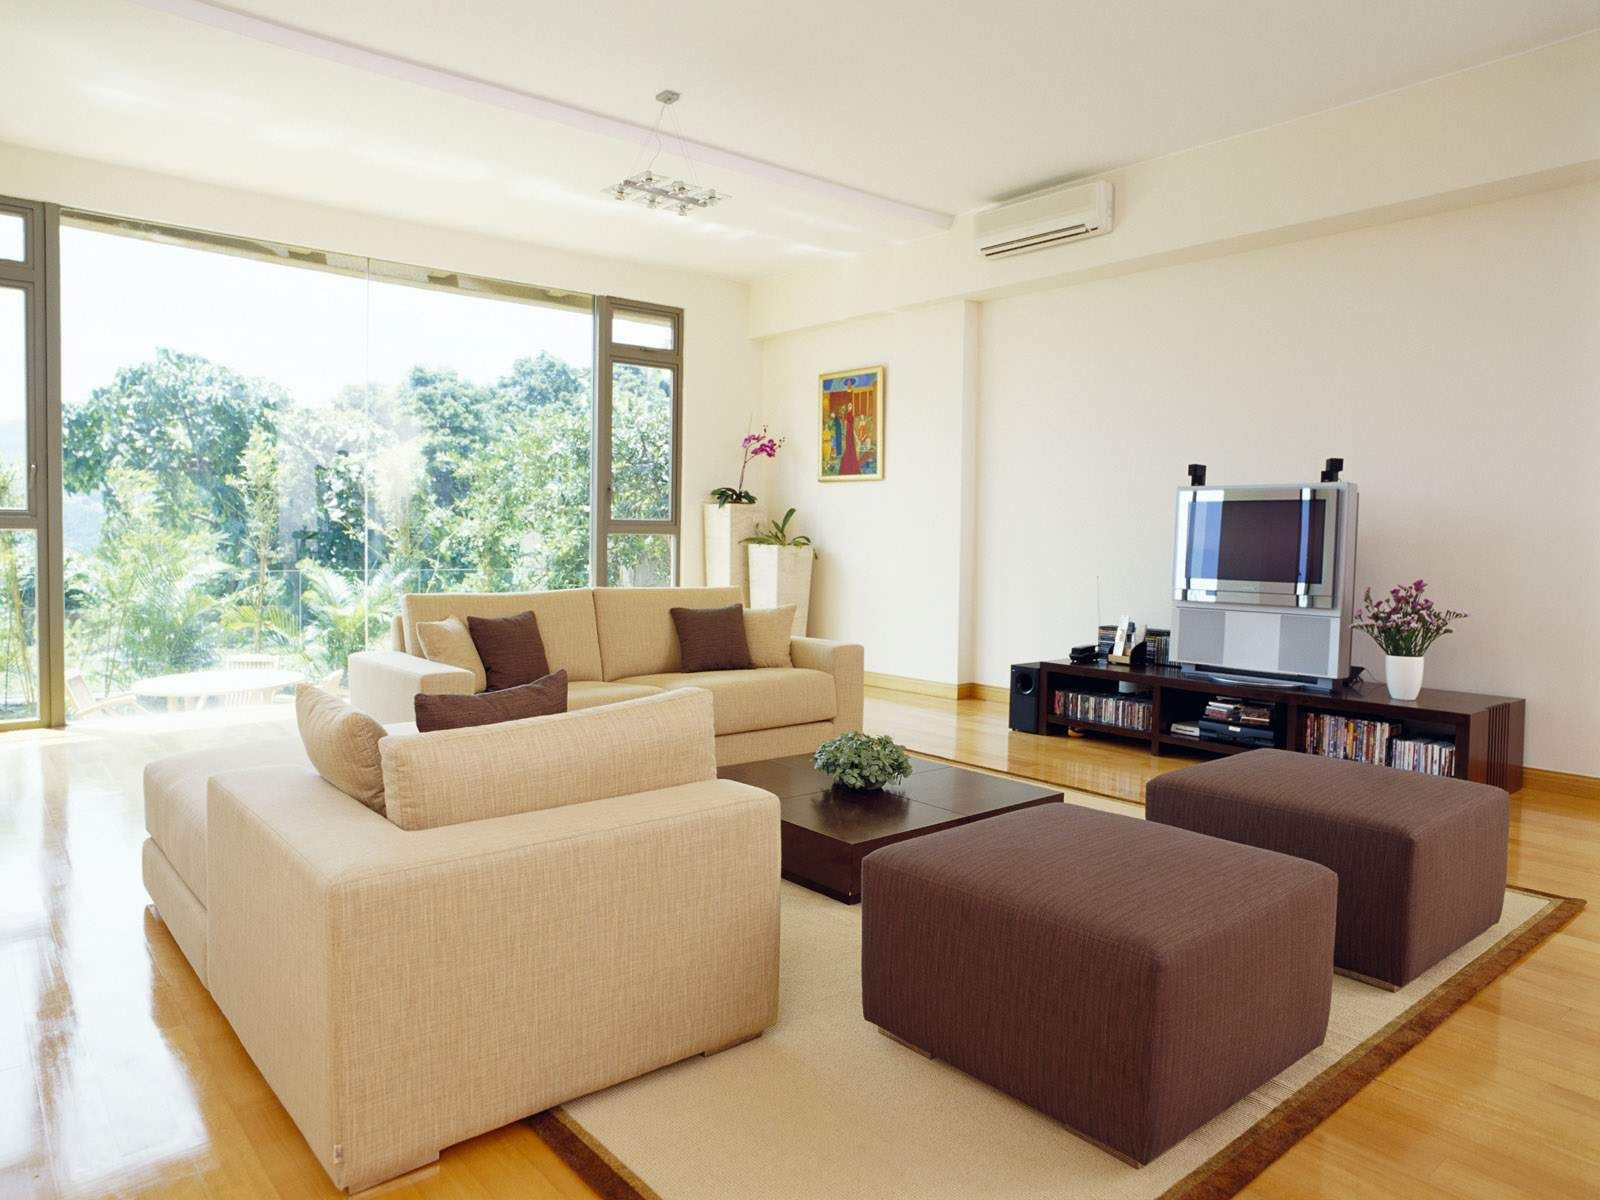 Simple Interior Design For Small Living Room